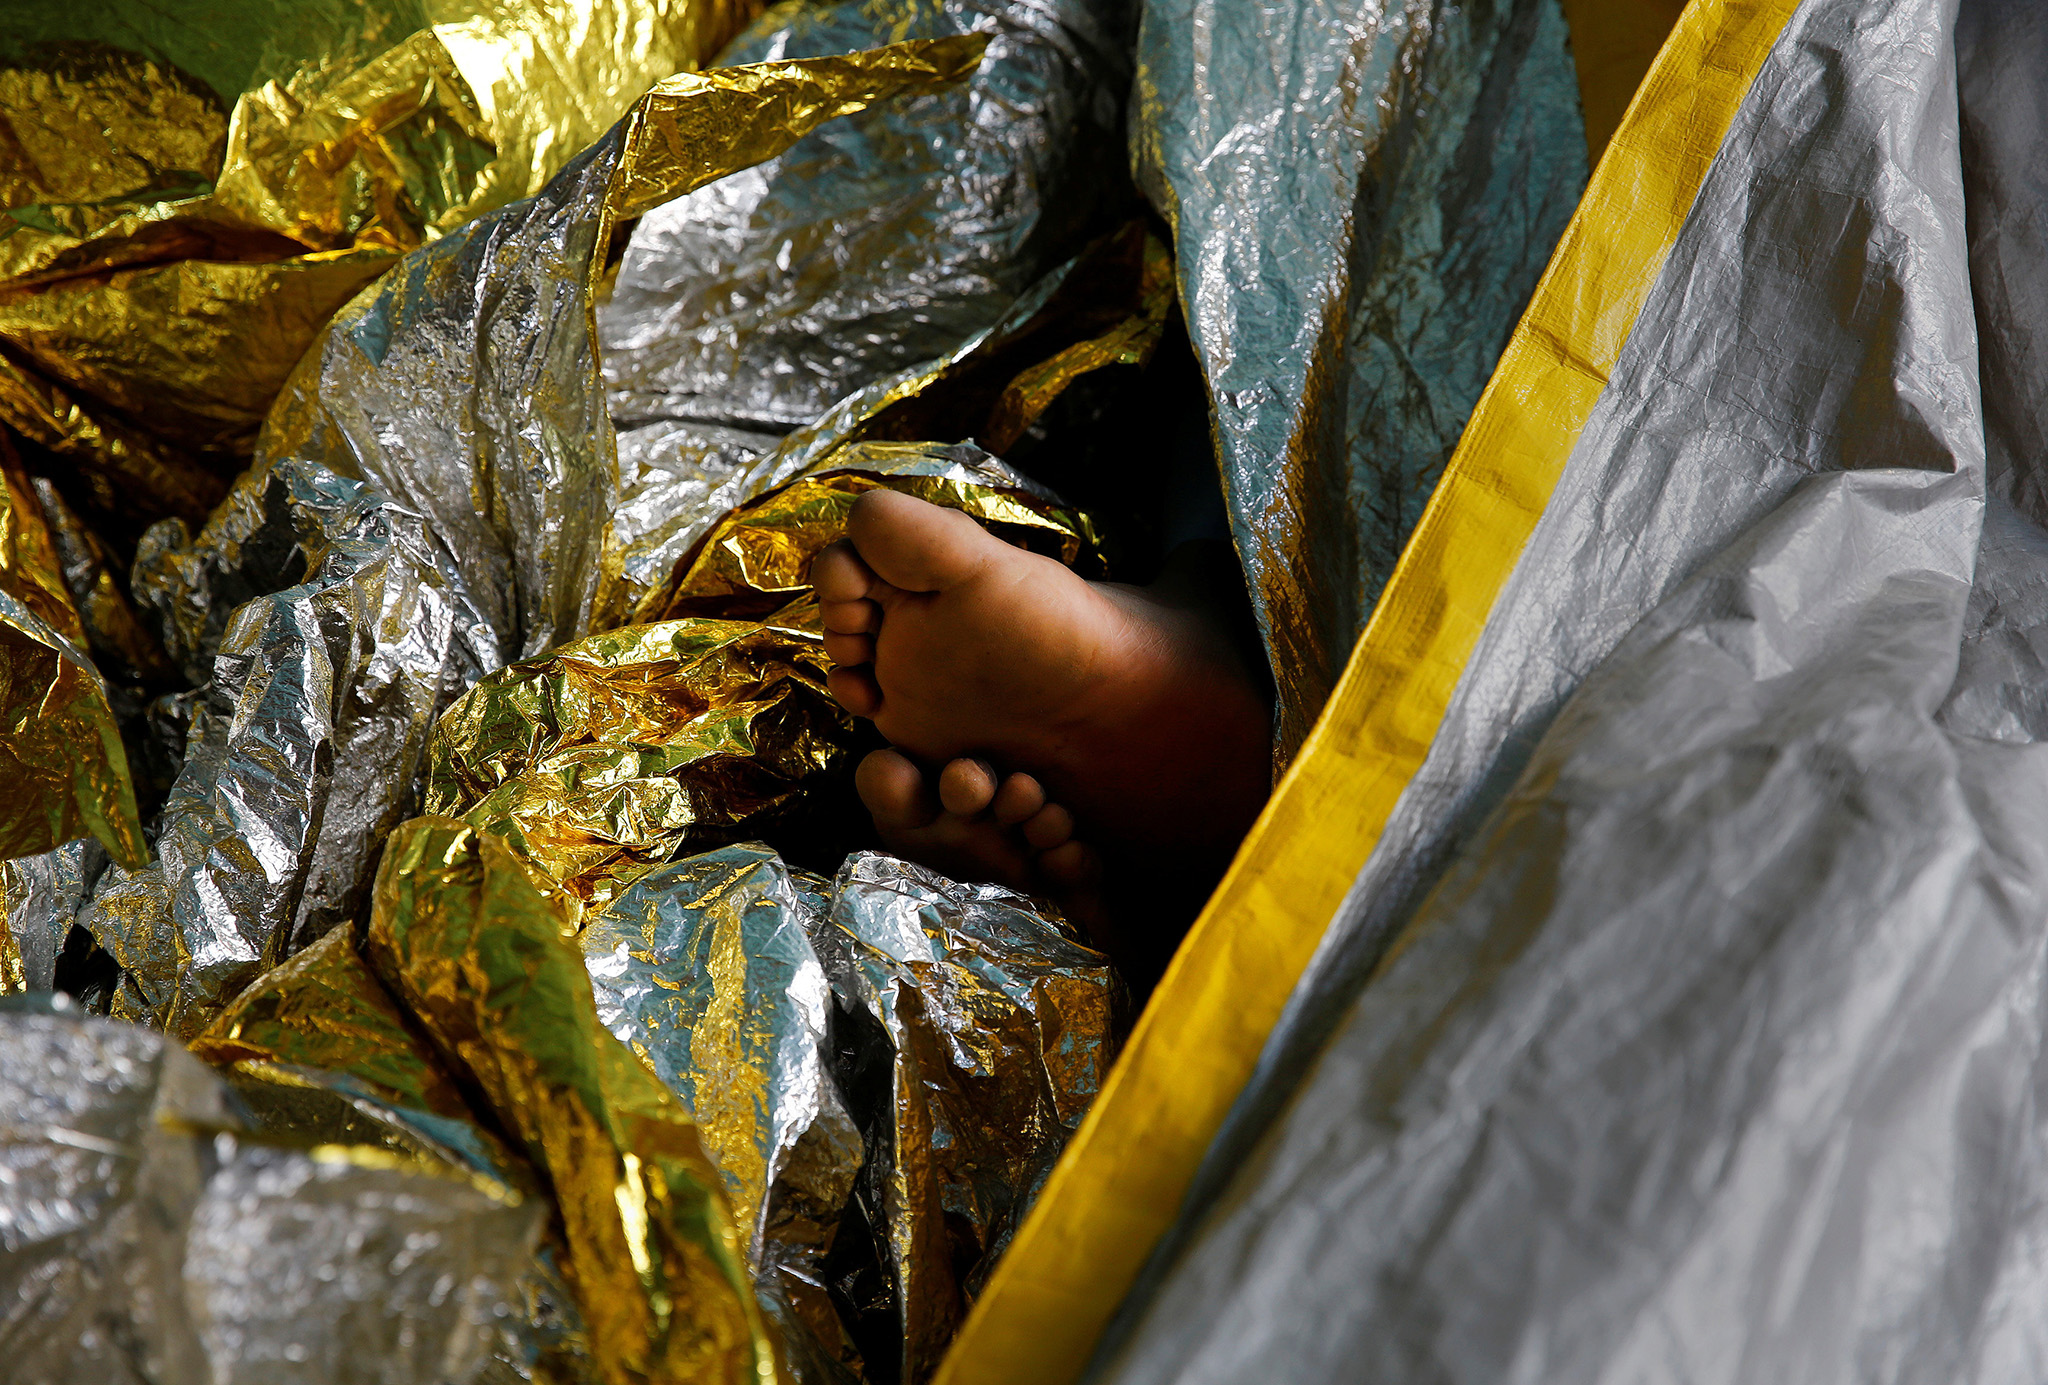 A migrant's feet peeks out of thermal blankets onboard the former fishing trawler Golfo Azzurro after being rescued along with other migrants, including children and pregnant women, by the Spanish NGO Proactiva Open Arms from a raft that drifted out of control in the central Mediterranean Sea, some 36 nautical miles off the Libyan coast, January 3, 2017. REUTERS/Yannis Behrakis